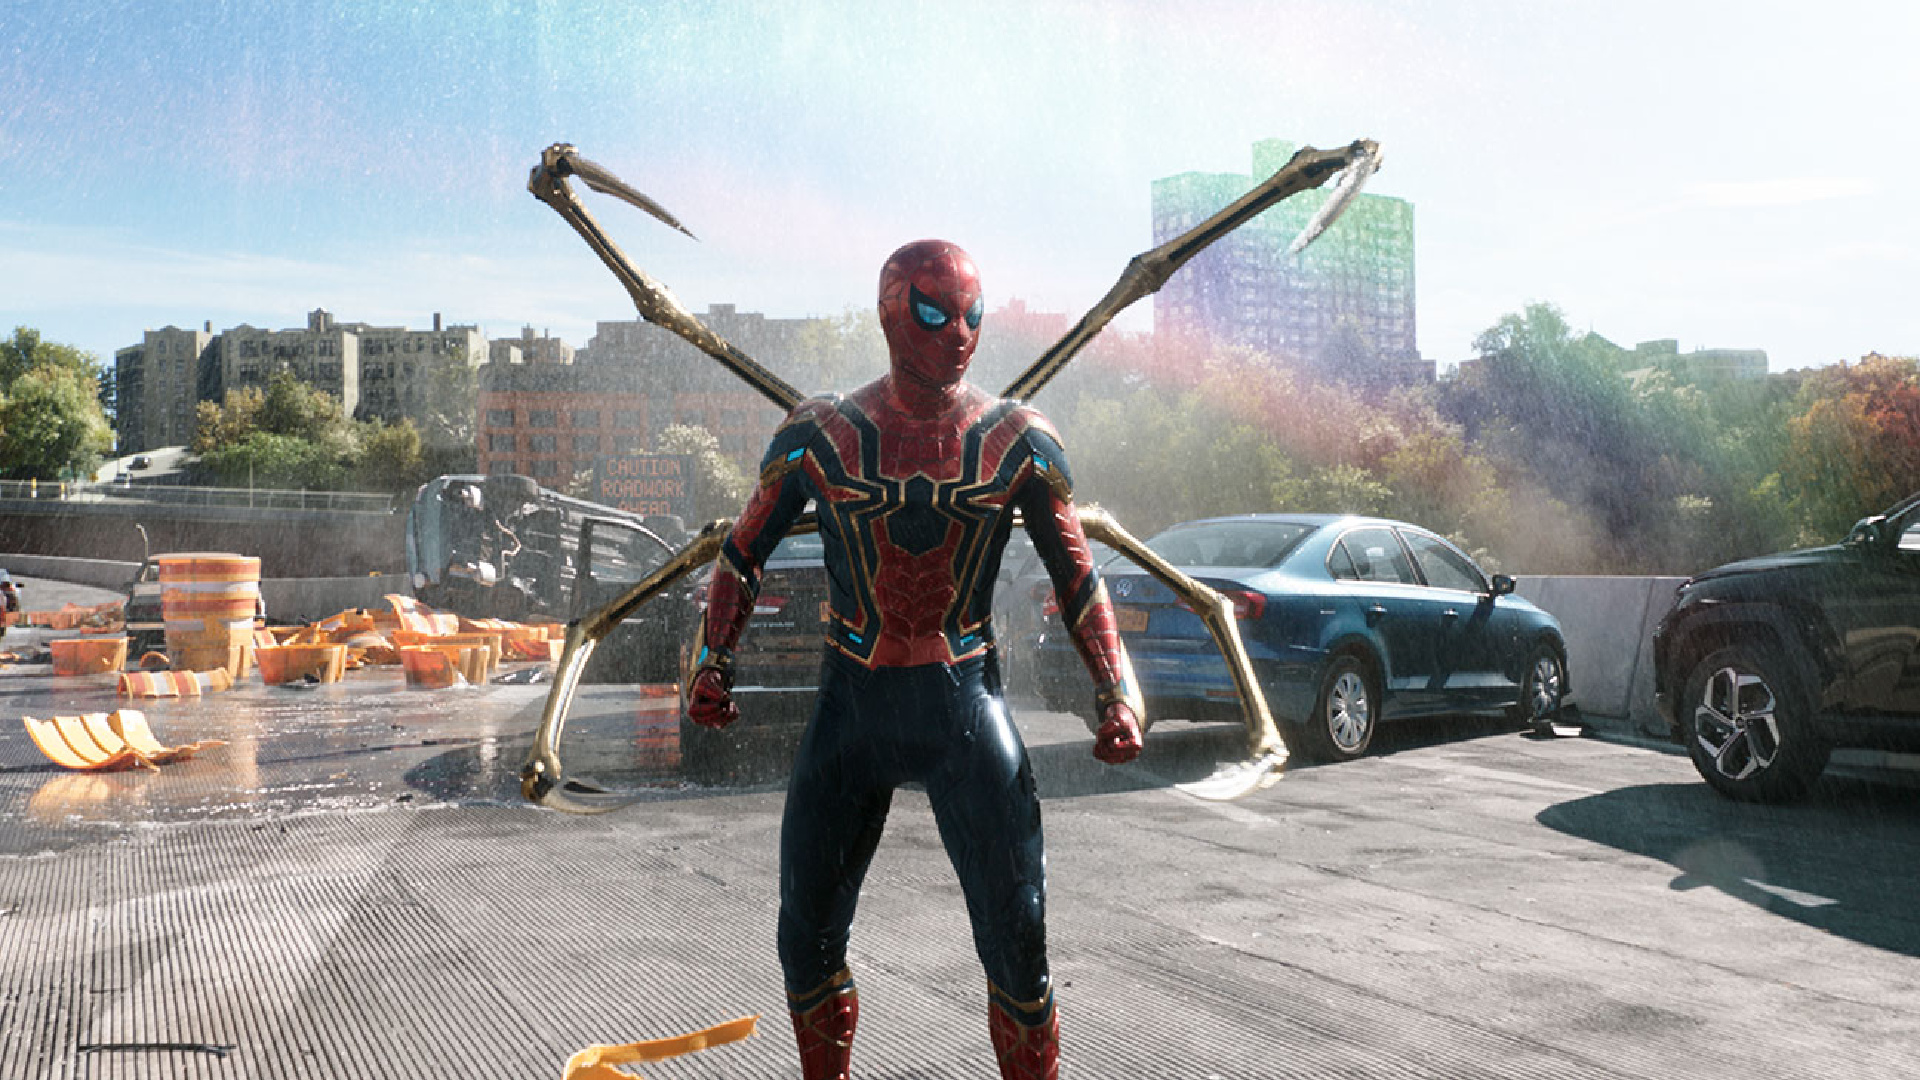 'Spider-Man: No Way Home' trailer gives secret hints about star cast